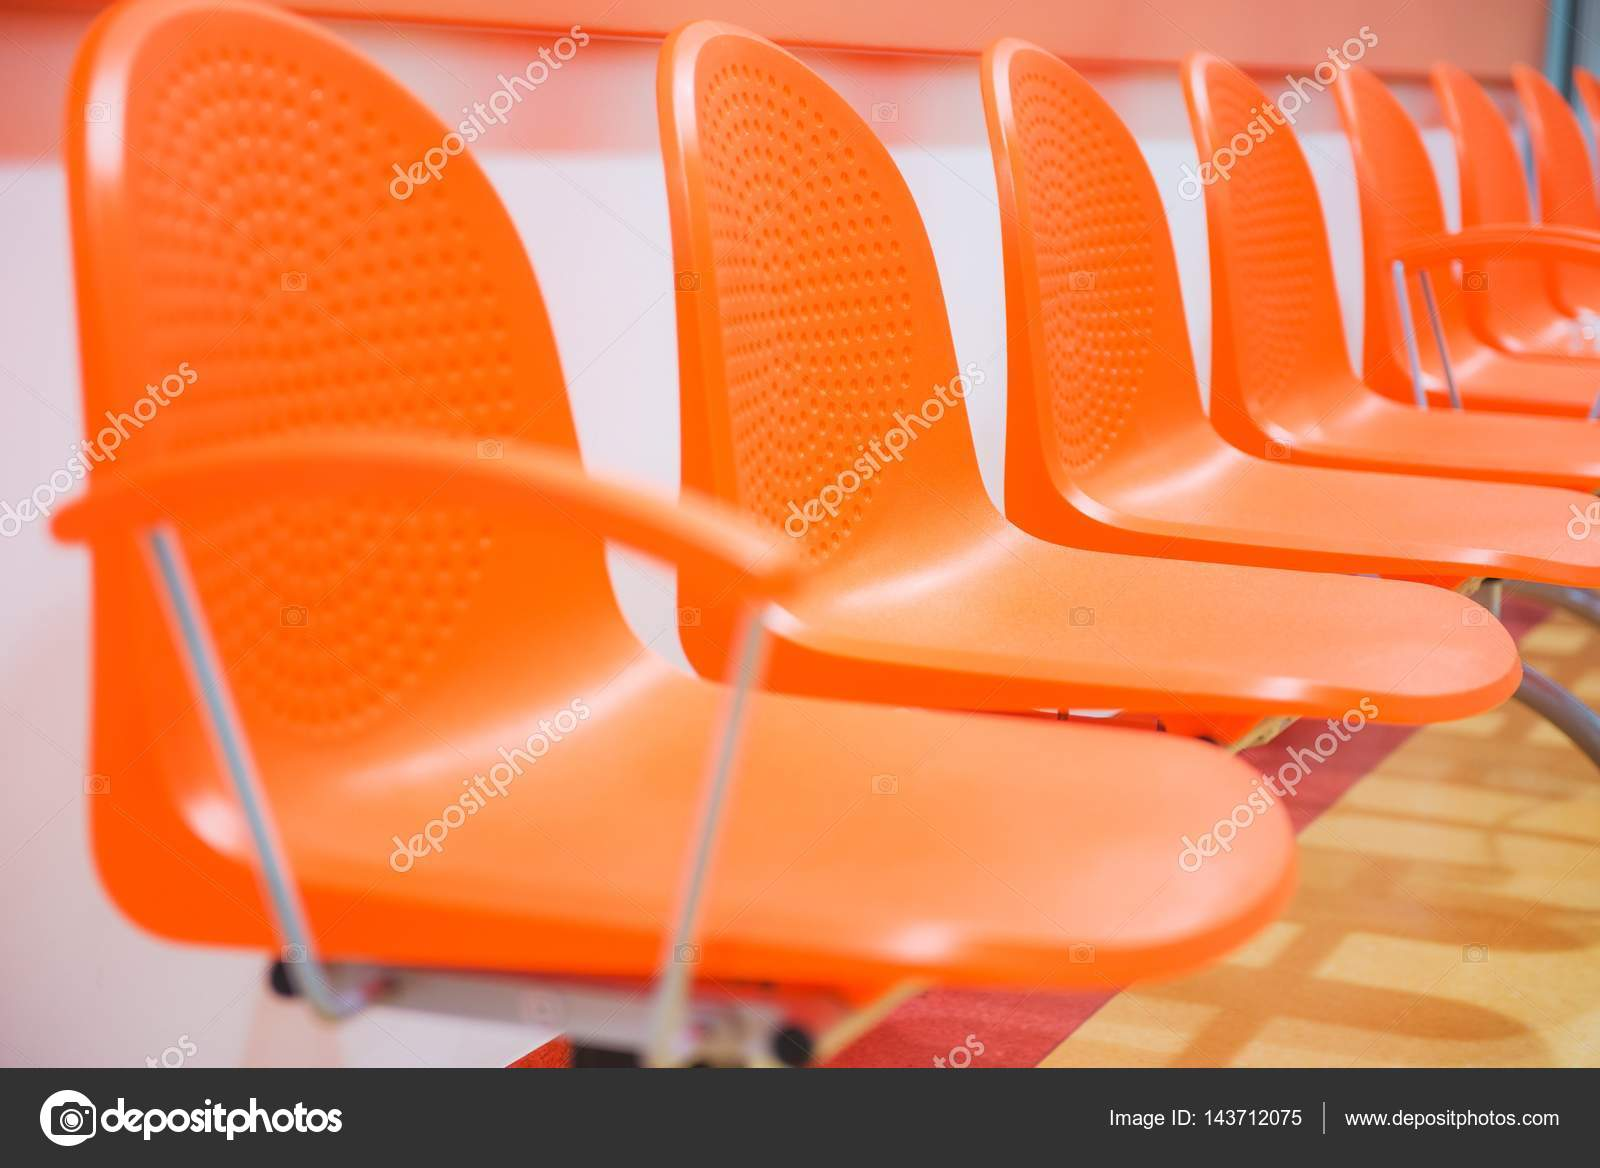 Picture of: Hospital Waiting Room Chairs Stock Photo C Welcomia 143712075